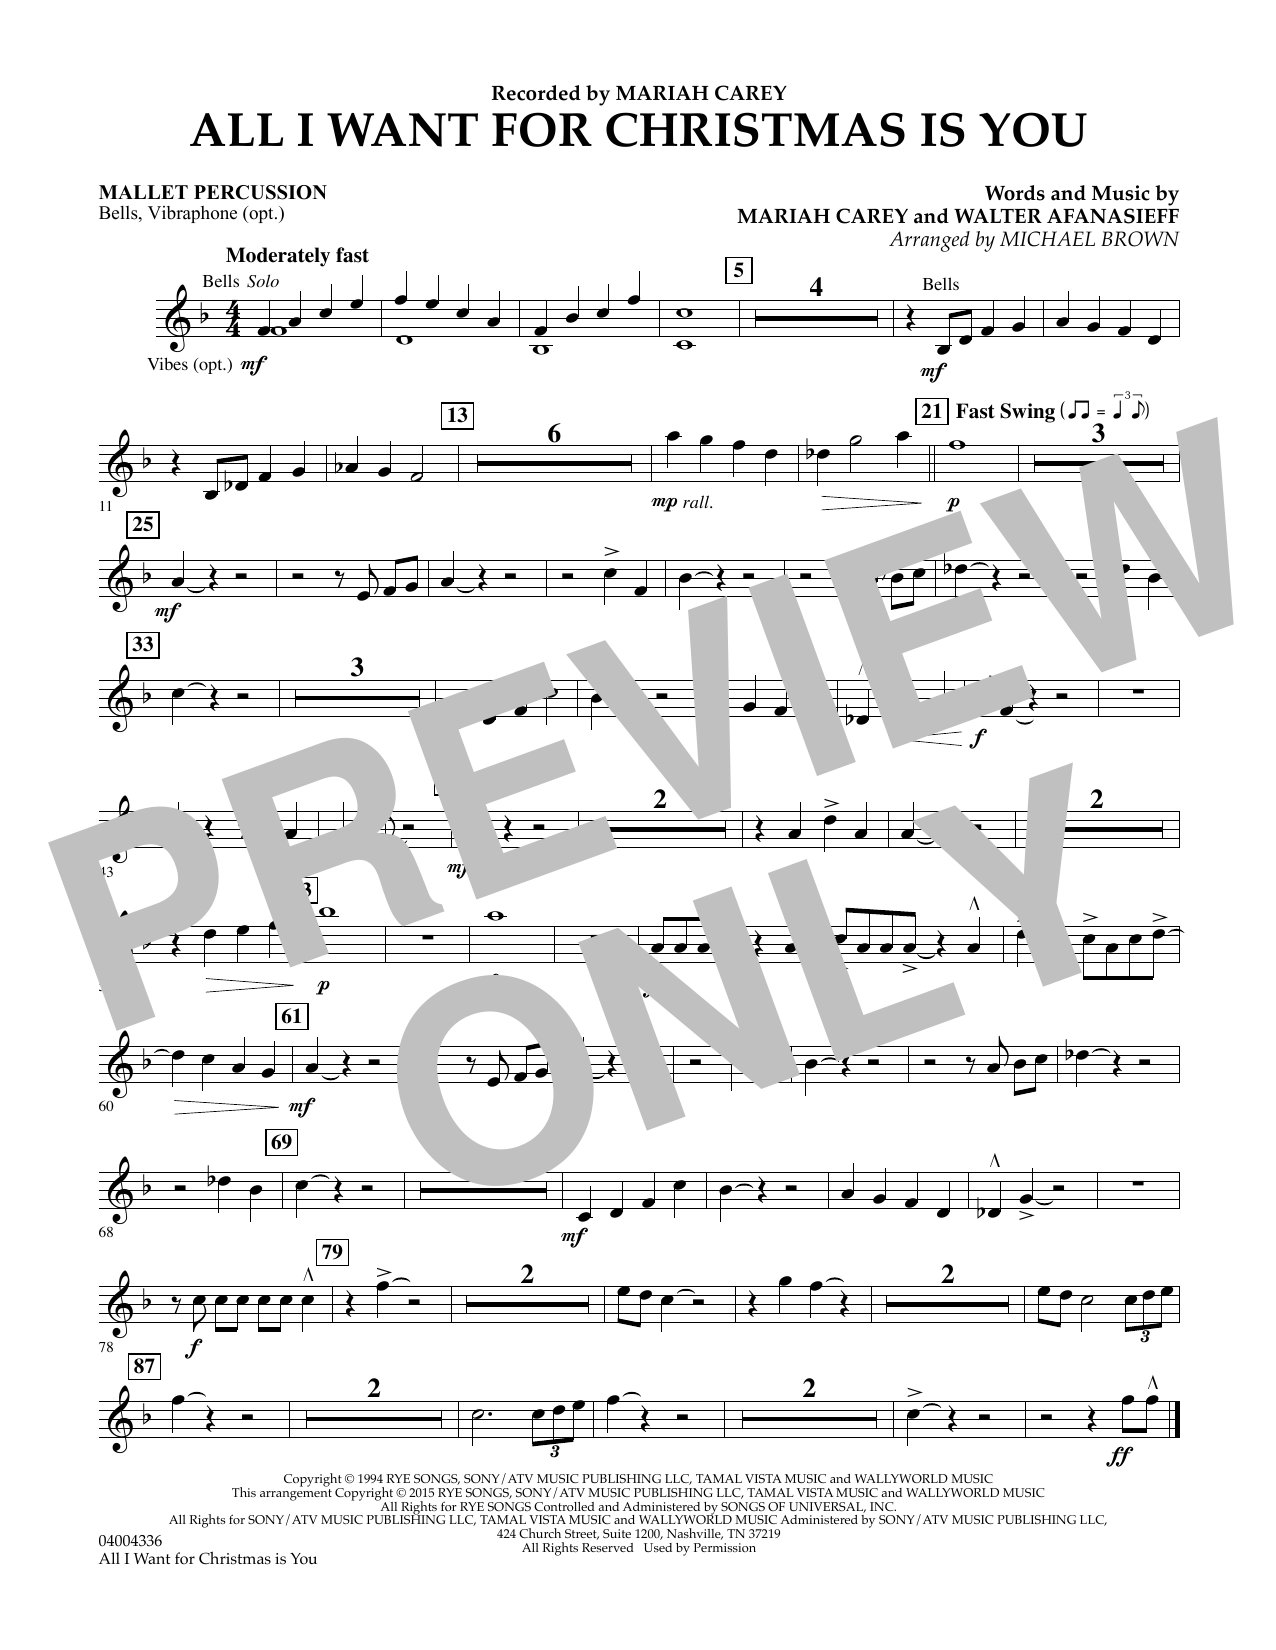 All I Want for Christmas Is You (arr. Michael Brown) - Mallet Percussion (Concert Band)